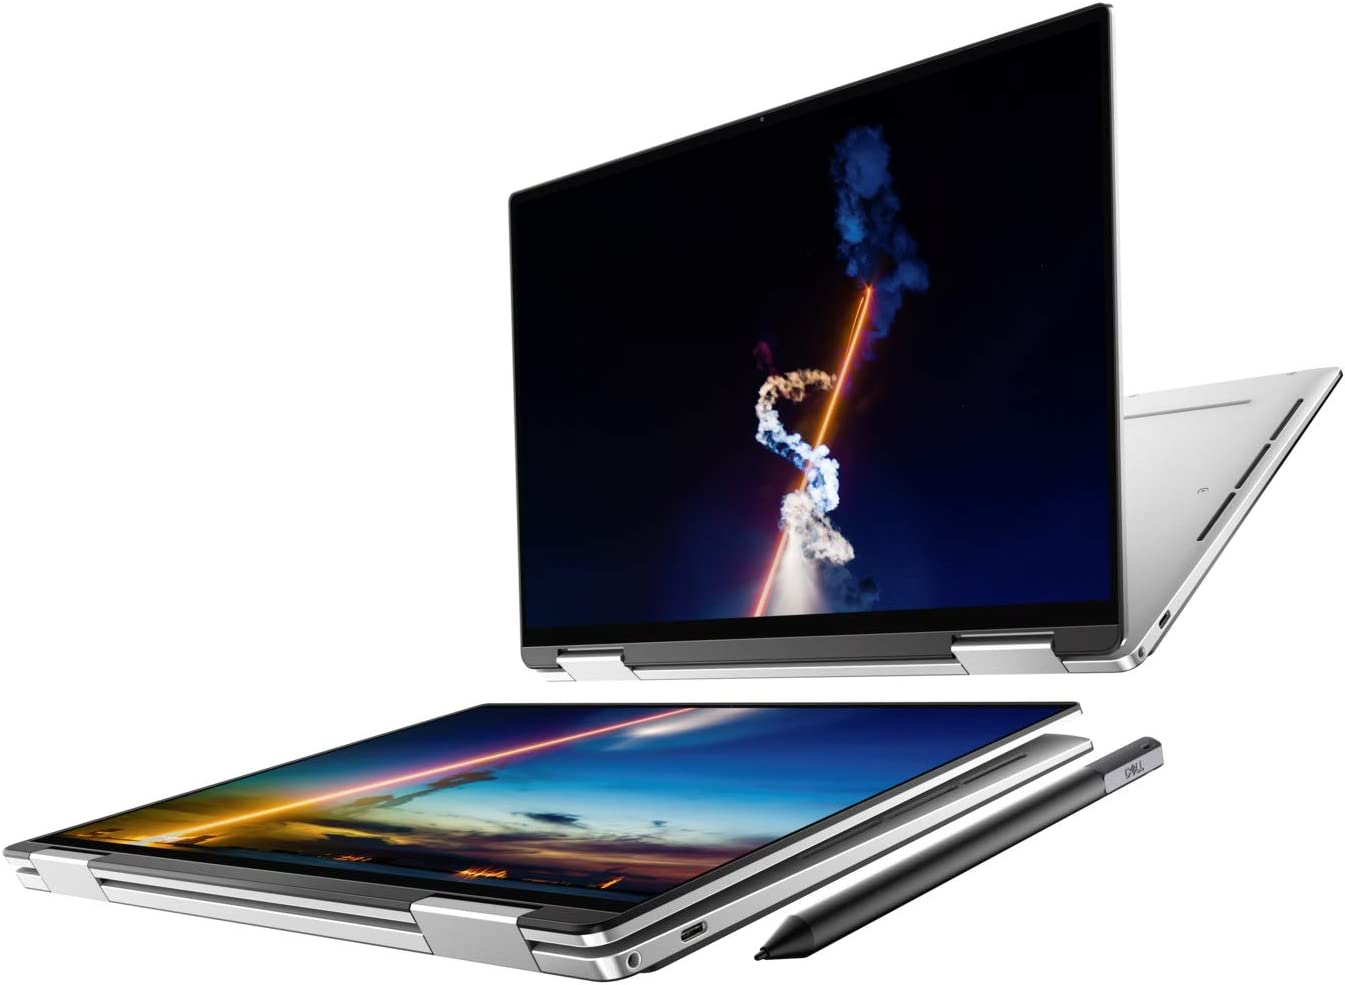 "New XPS 13 2-in-1 7390 Intel's 10th Gen i7-1065G7 Intel Iris Plus Graphics 13.4"" 4K UHD Touch Display Premium Active Stylus Pen + Best Notebook Pen Light (1TGB SSD